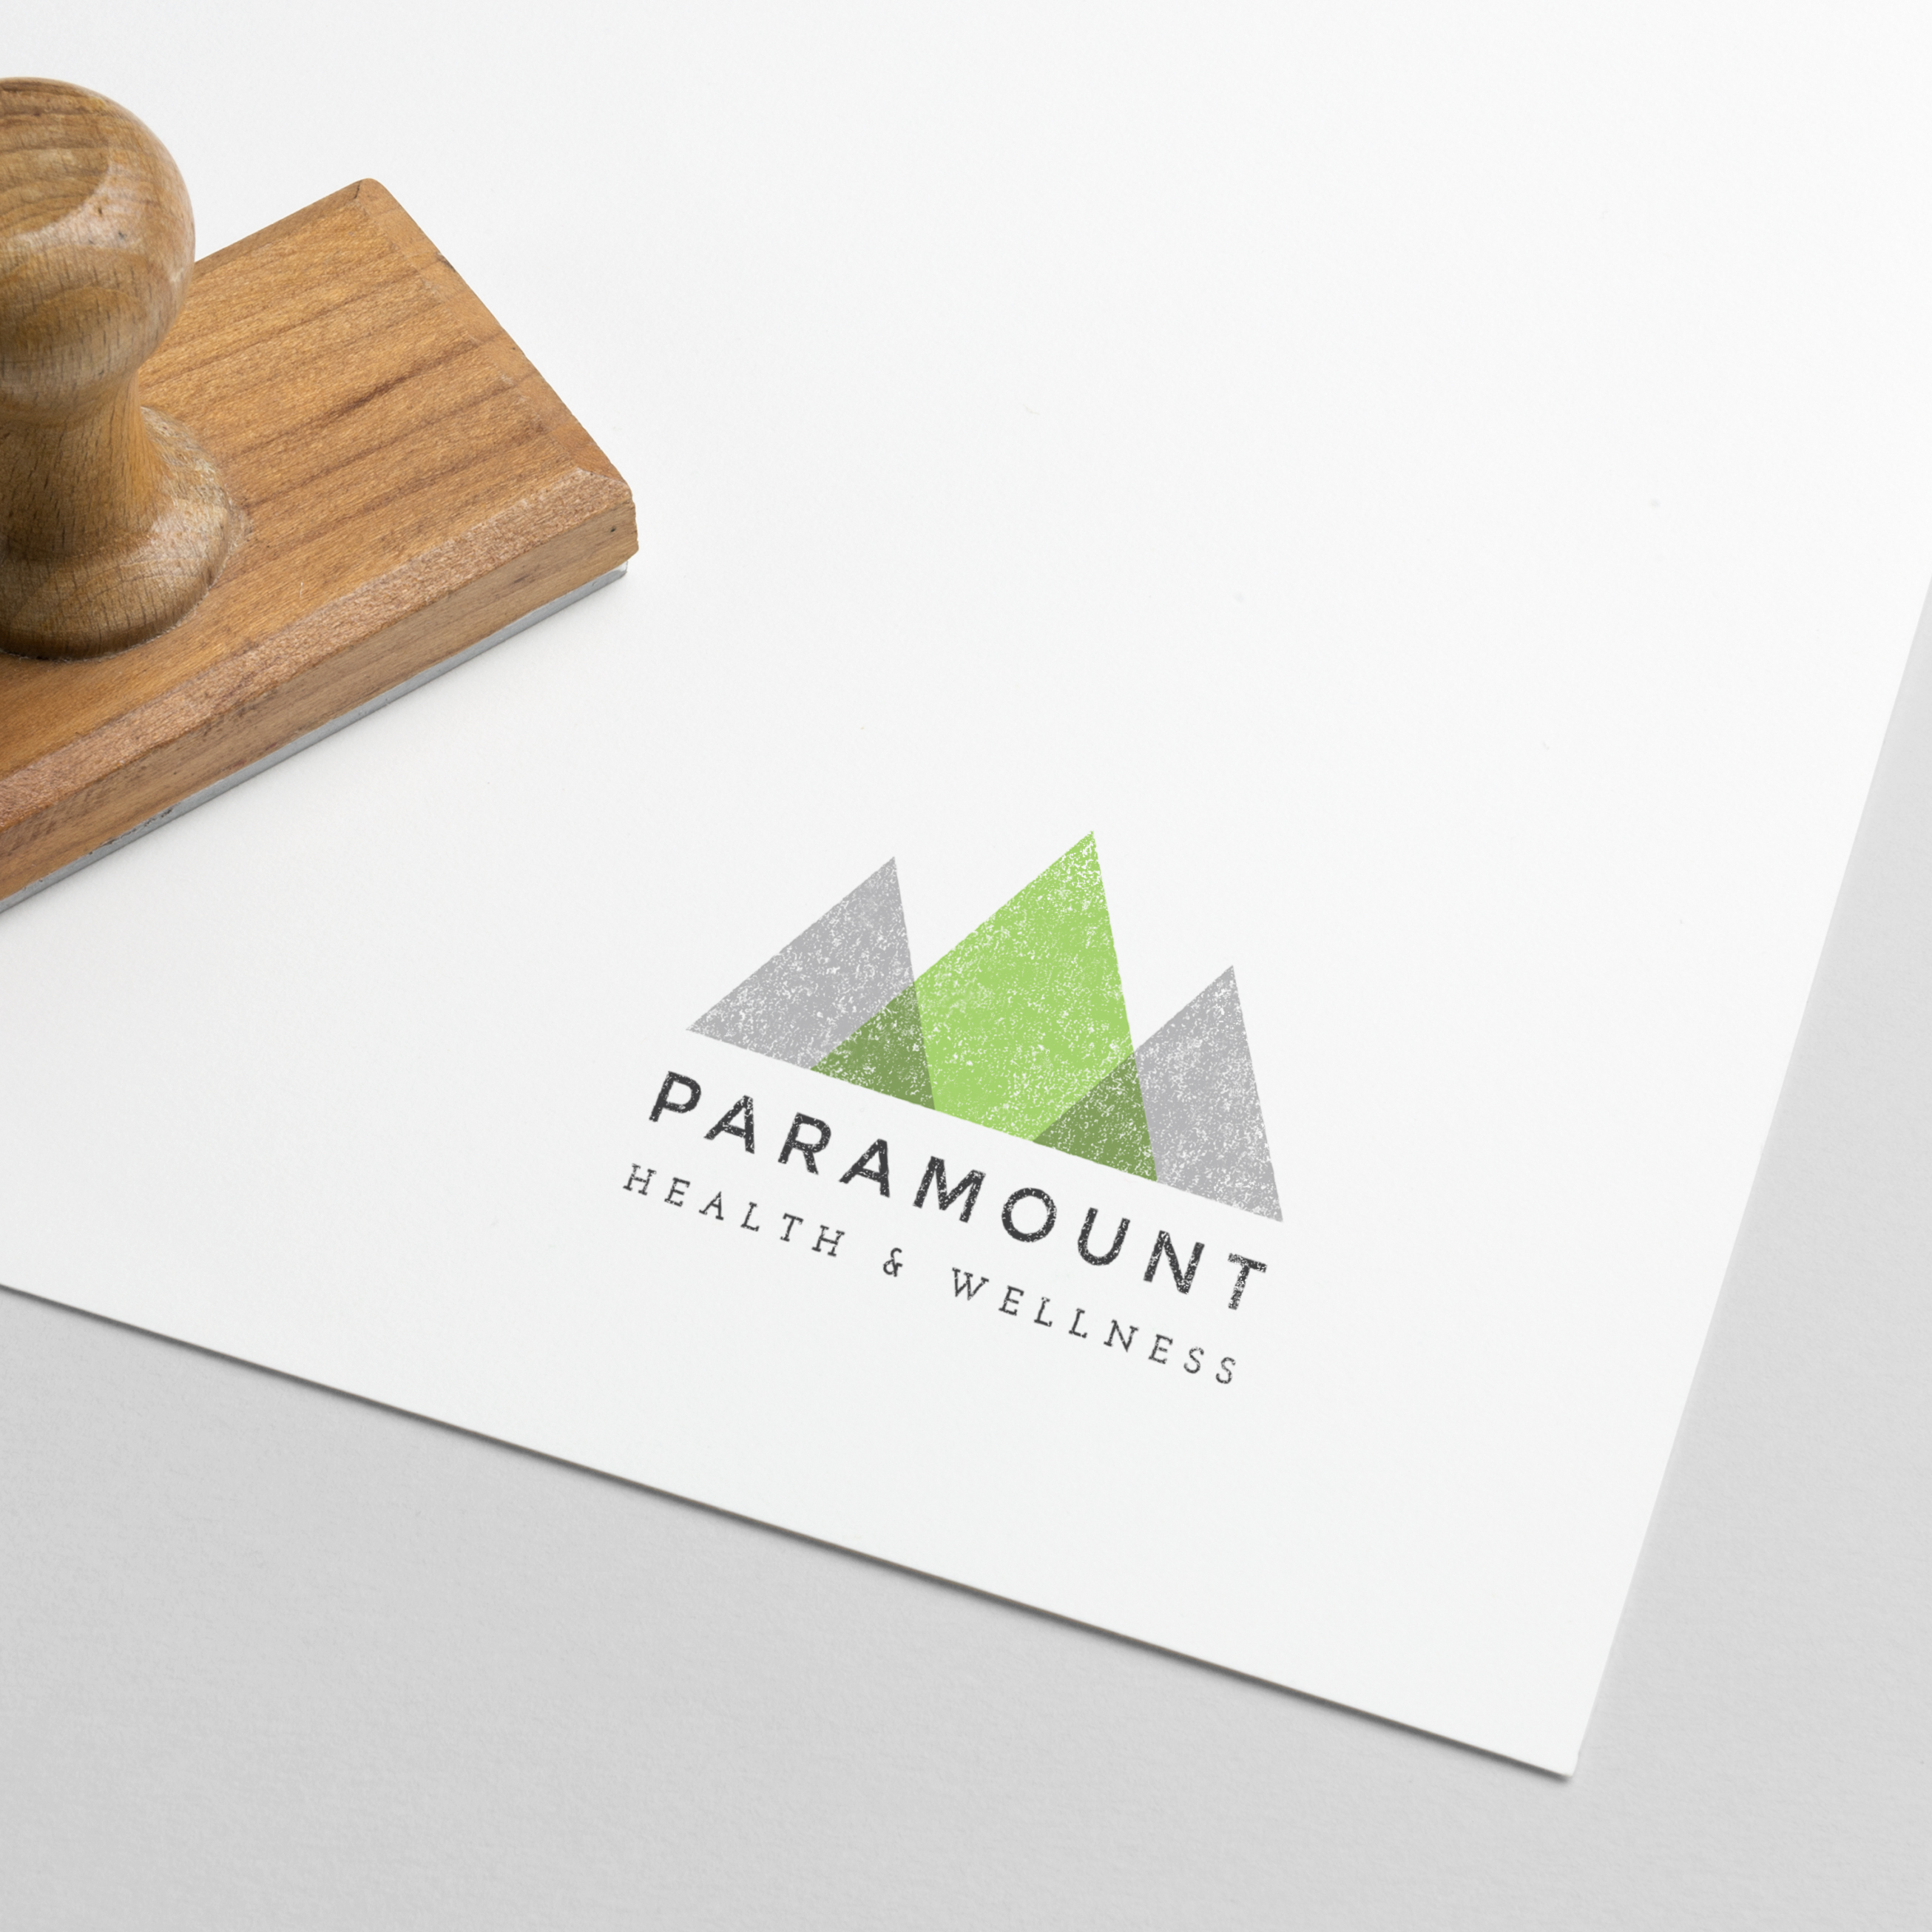 Paramount logo business card hey there im gabriel post navigation reheart Choice Image